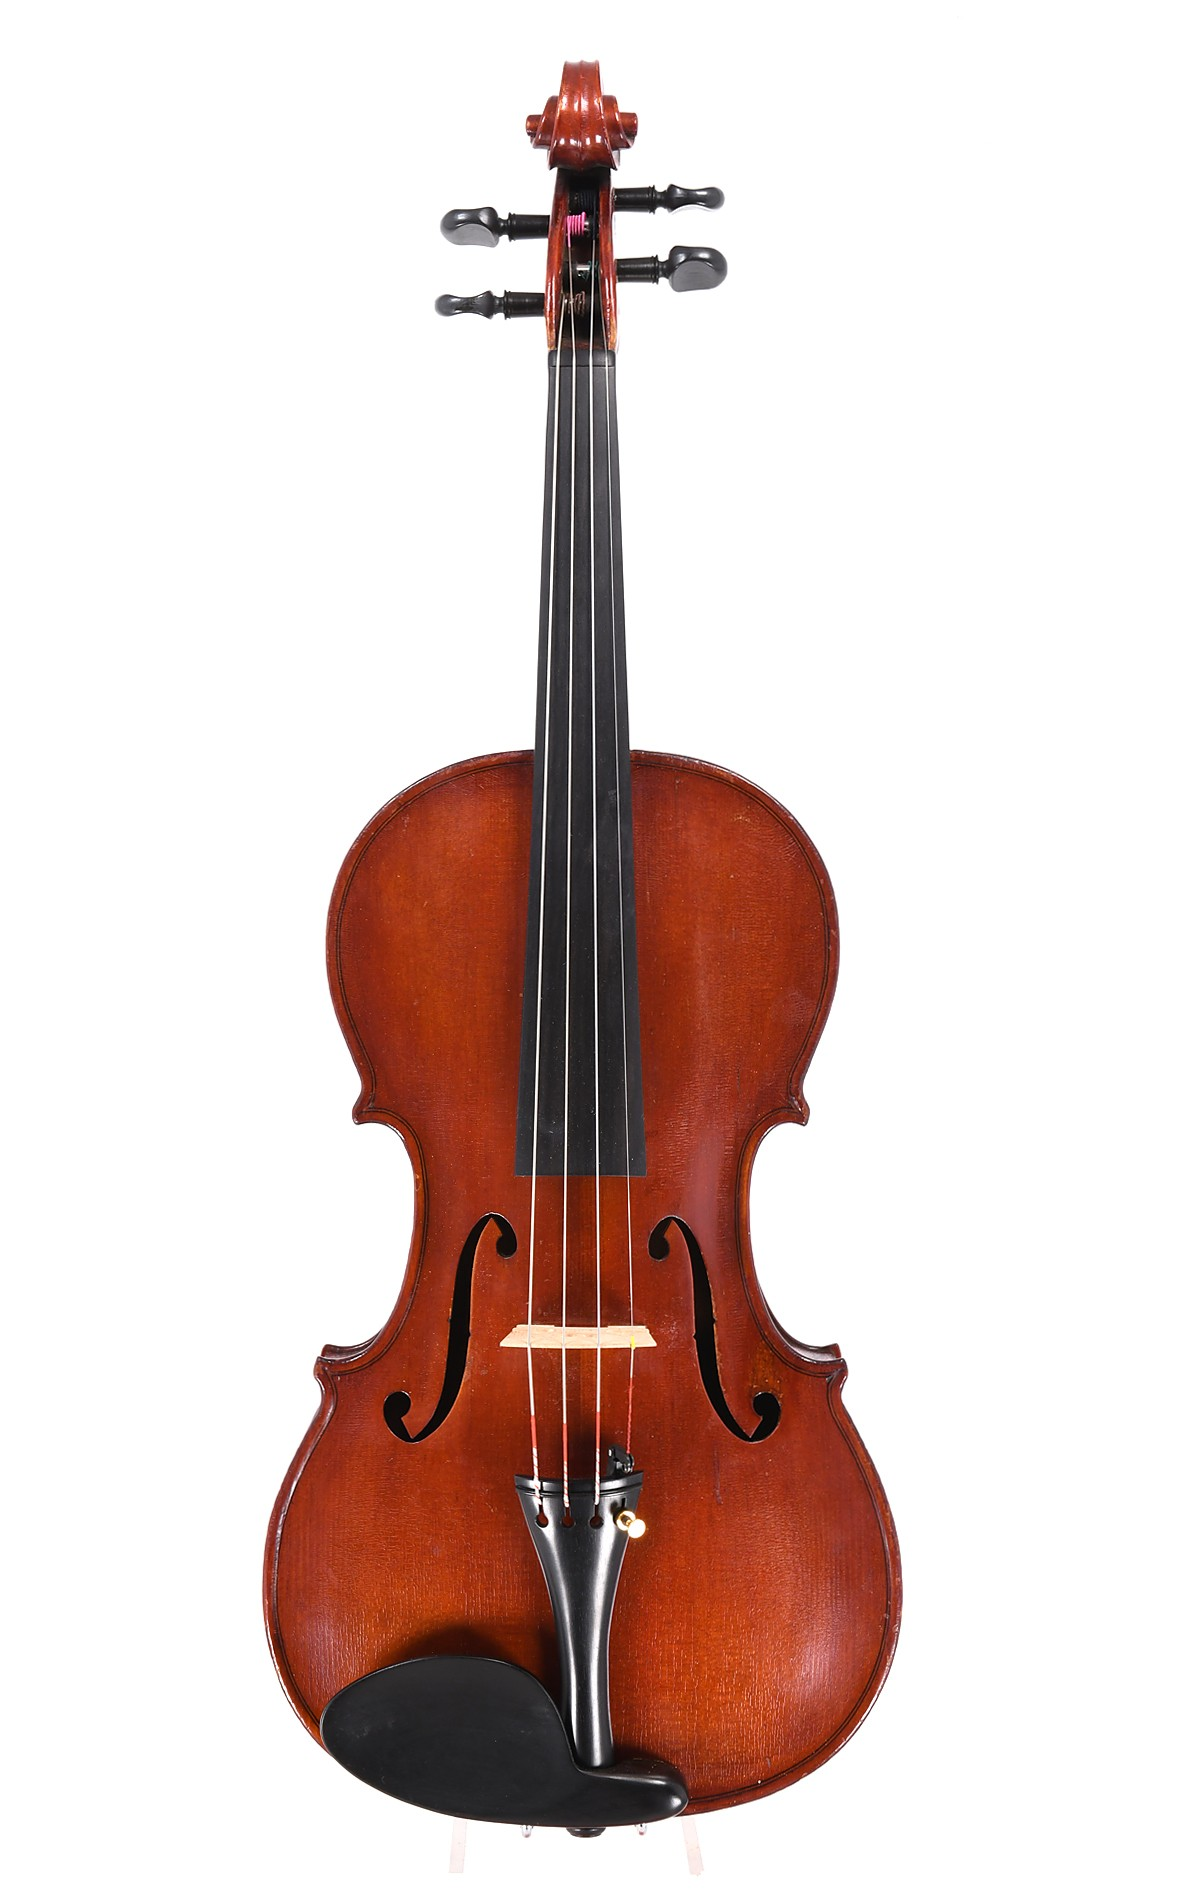 American violin by William Wilkanowski